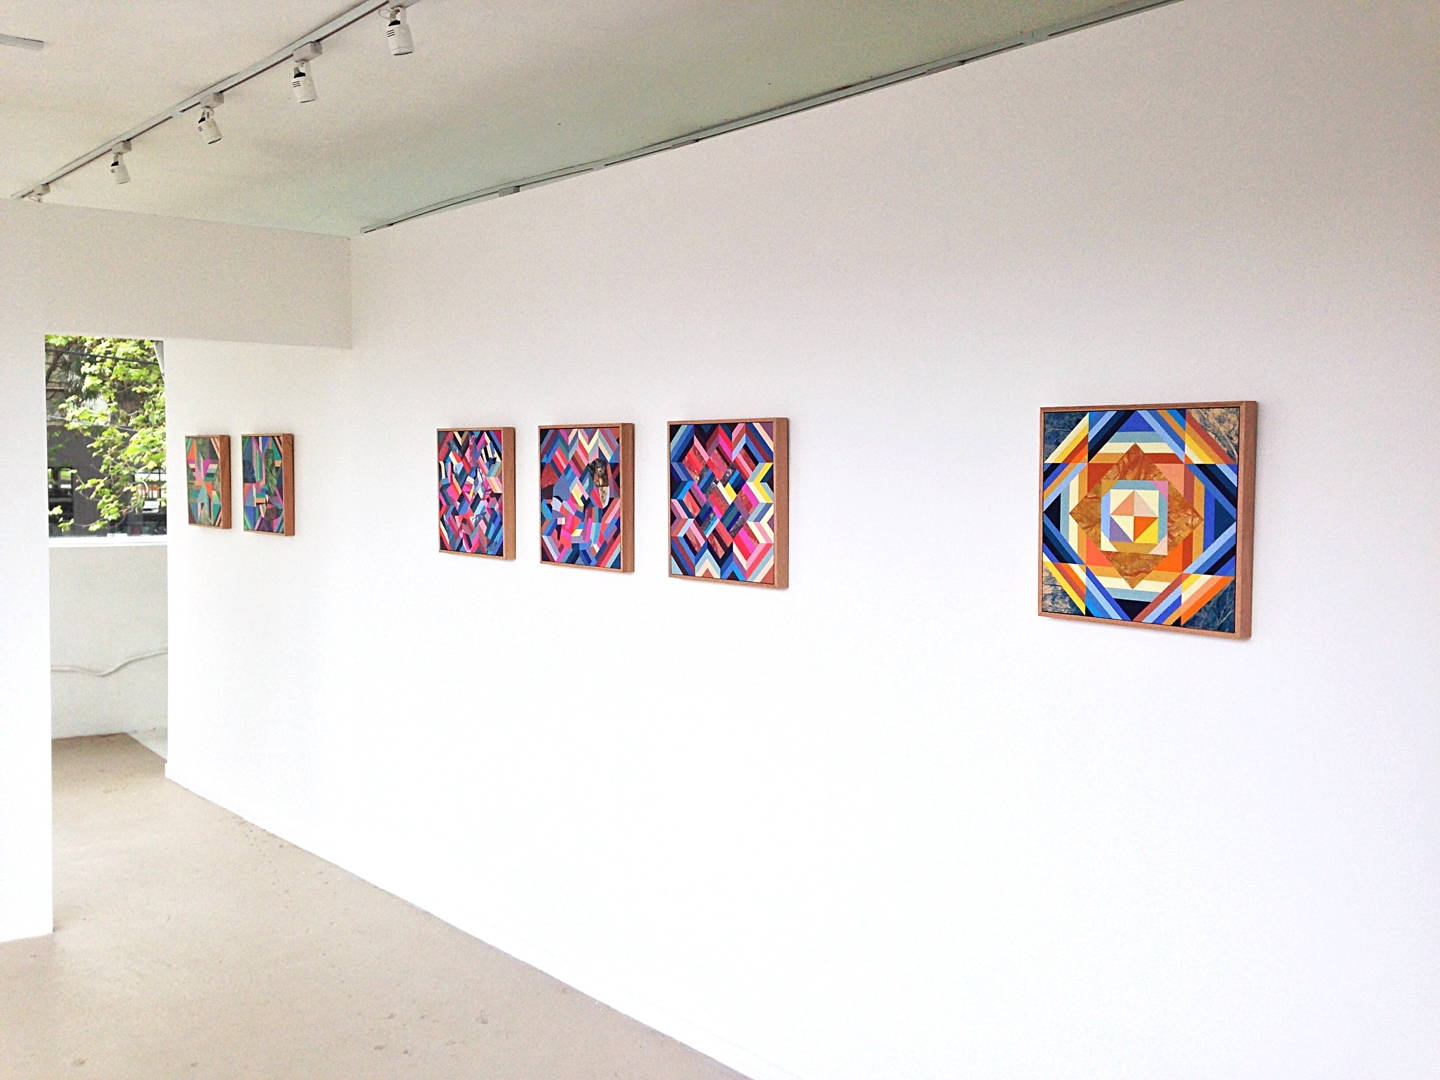 Pattern Remains - installation image